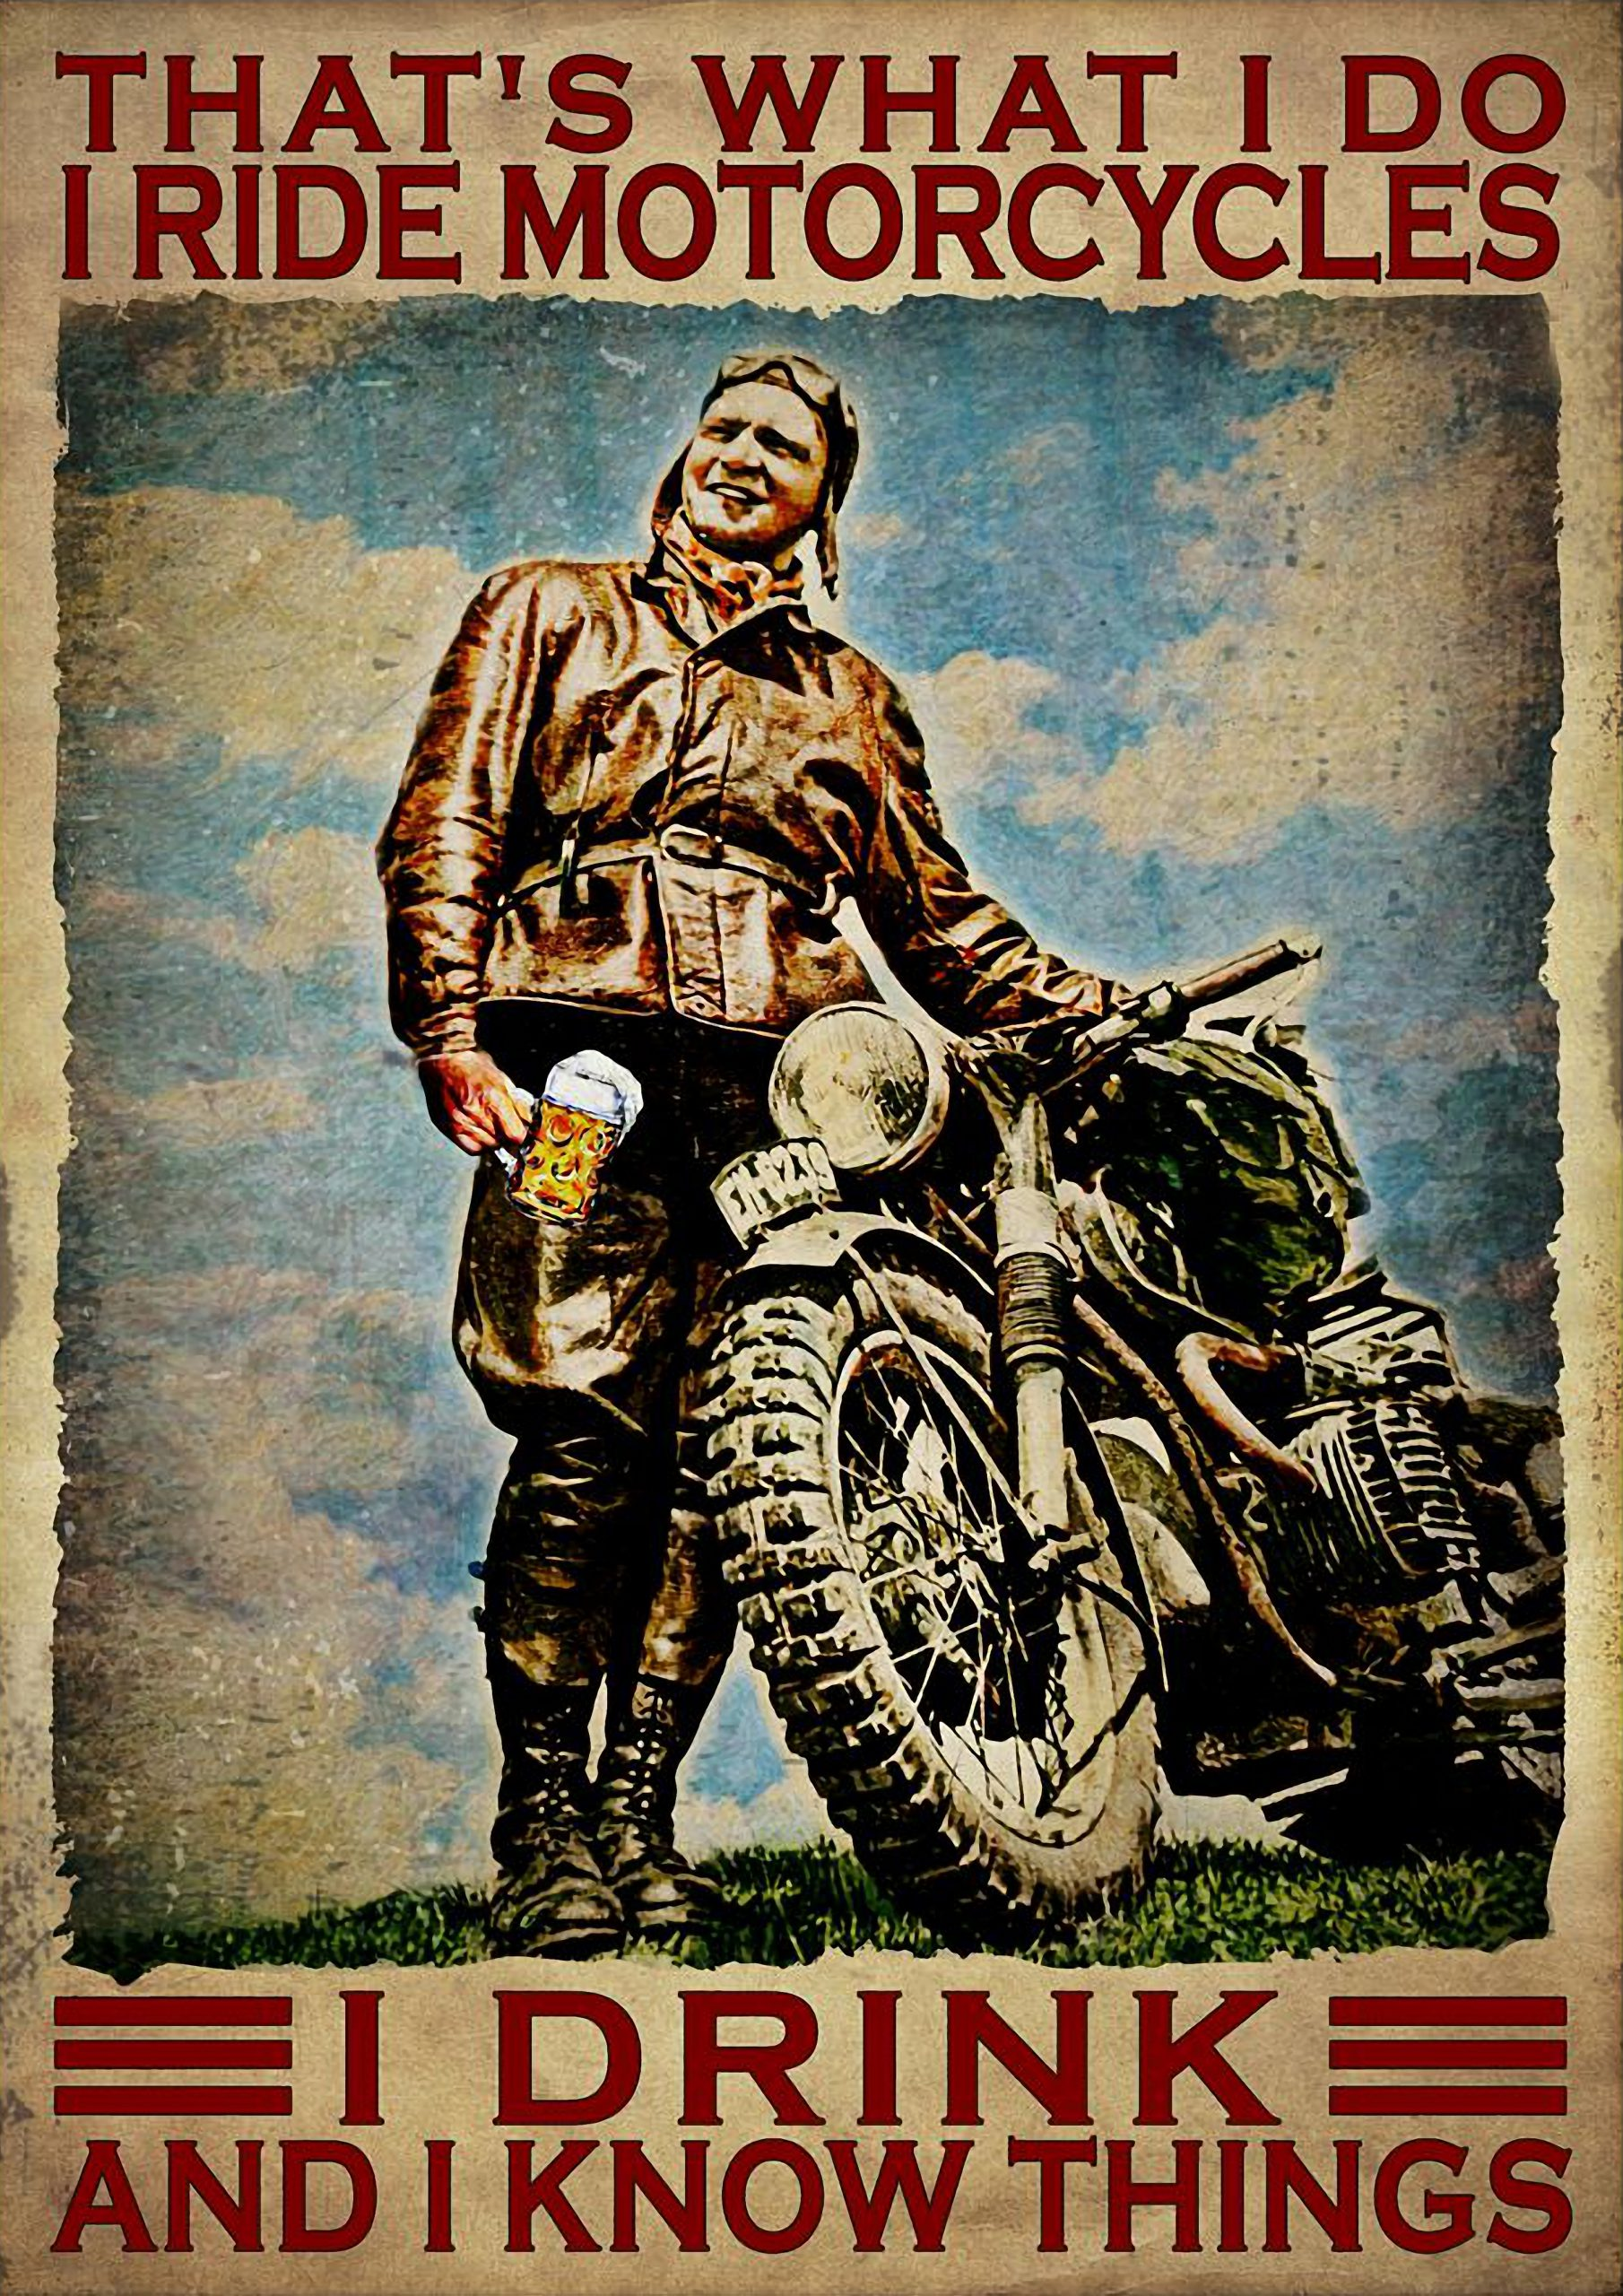 That's what I do I ride motorcycles I drink and I know things poster